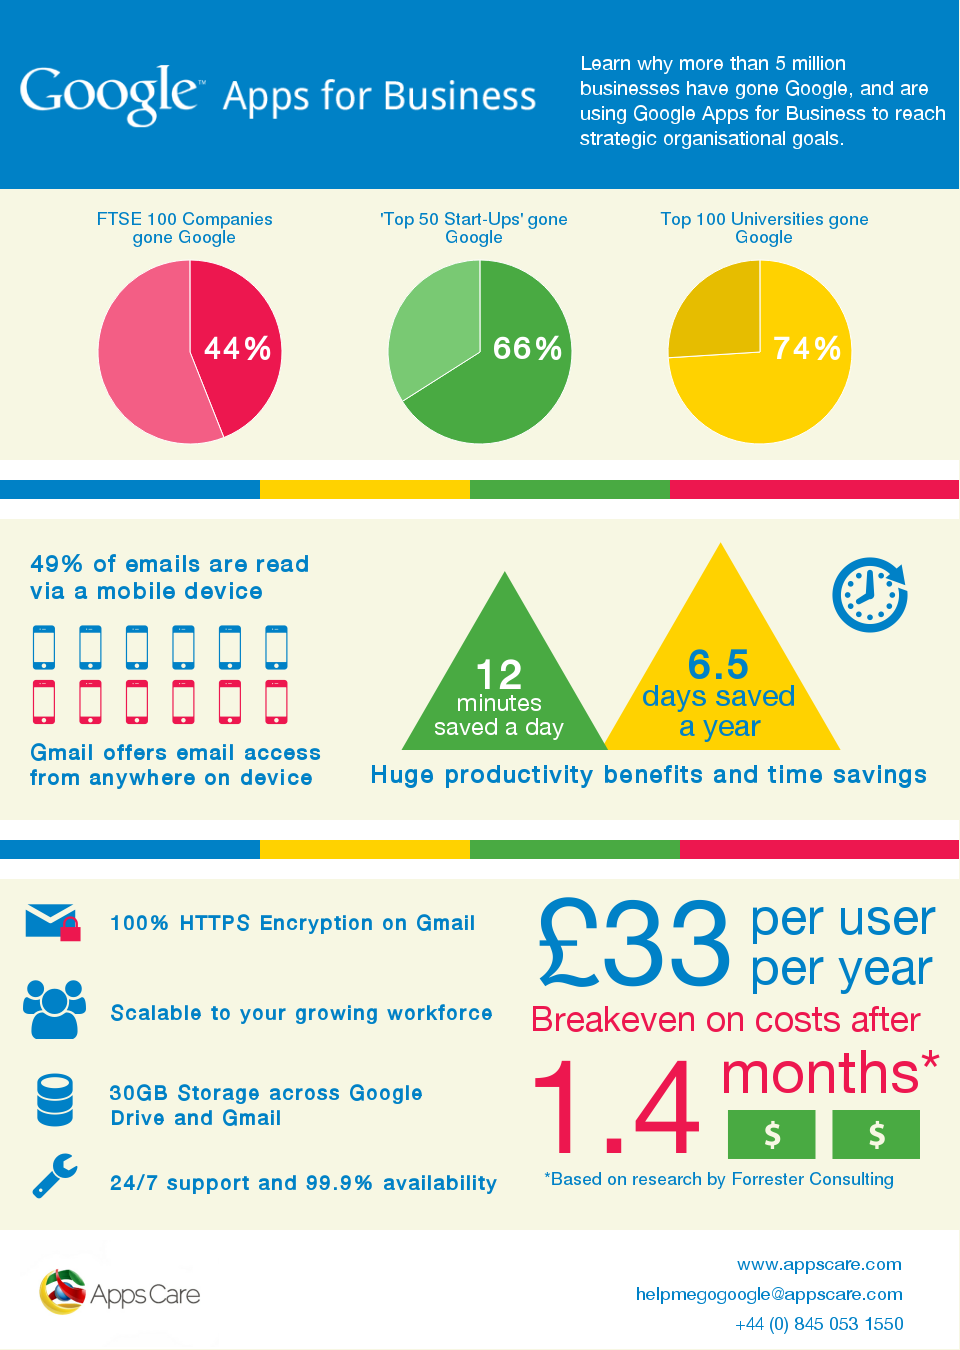 Google-Apps-Infographic-AppsCare-1